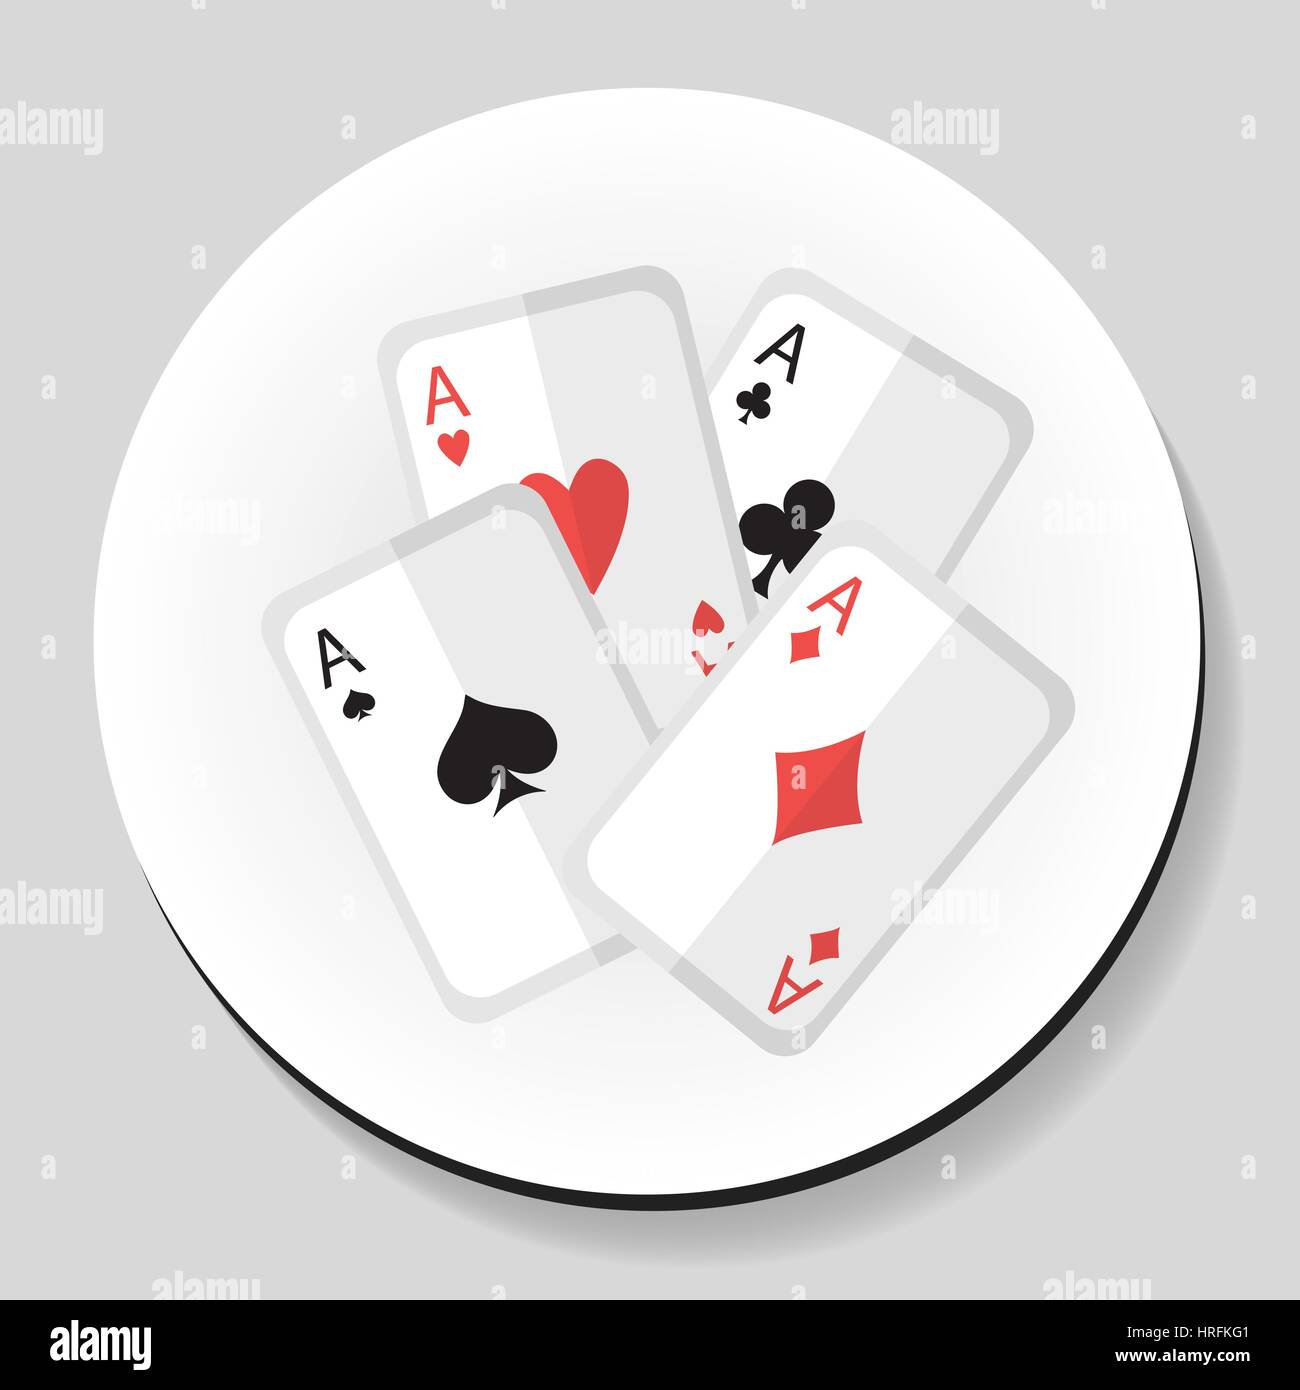 Playing Cards 4 Aces sticker icon flat style. Vector illustration. - Stock Image